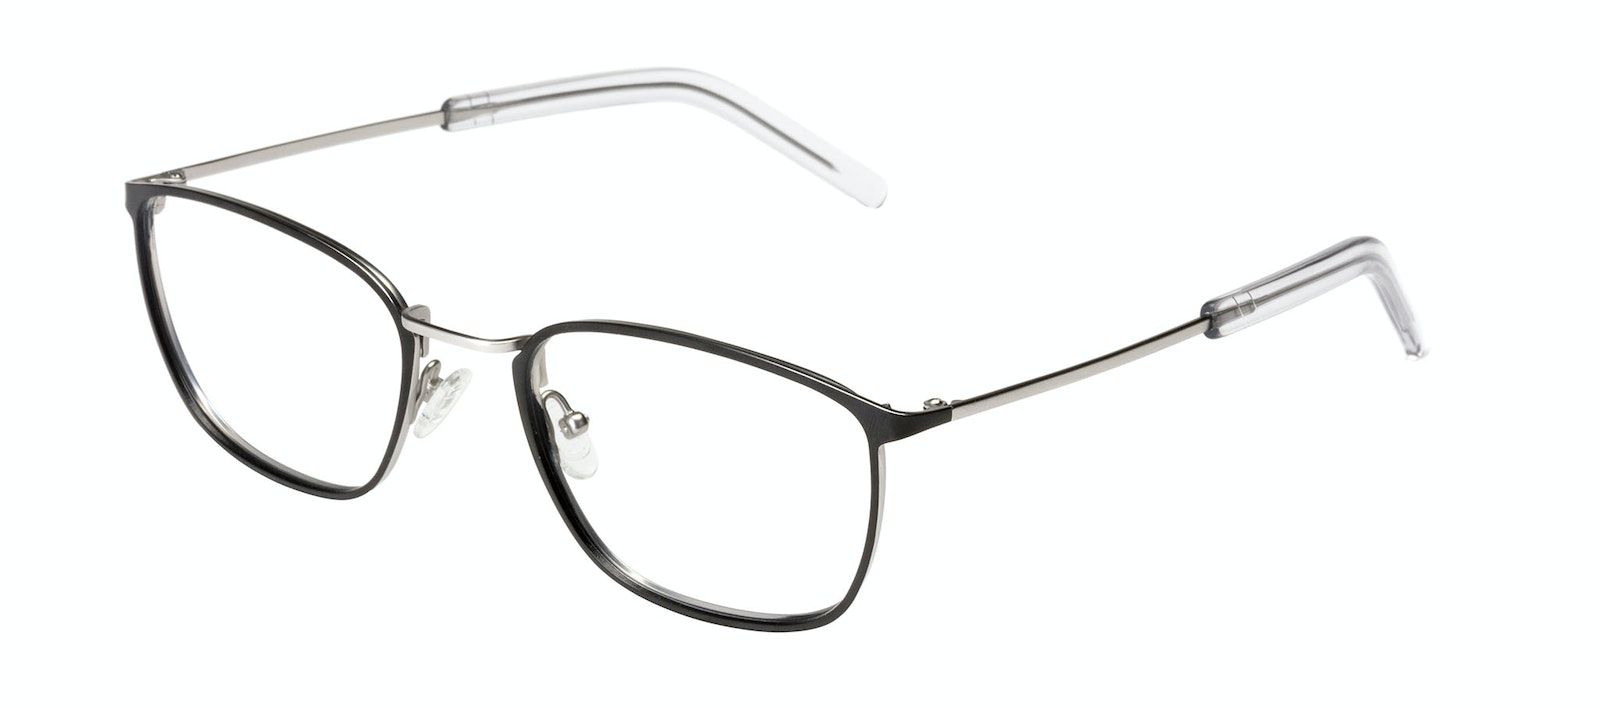 Affordable Fashion Glasses Rectangle Eyeglasses Men Edge Black Silver Tilt